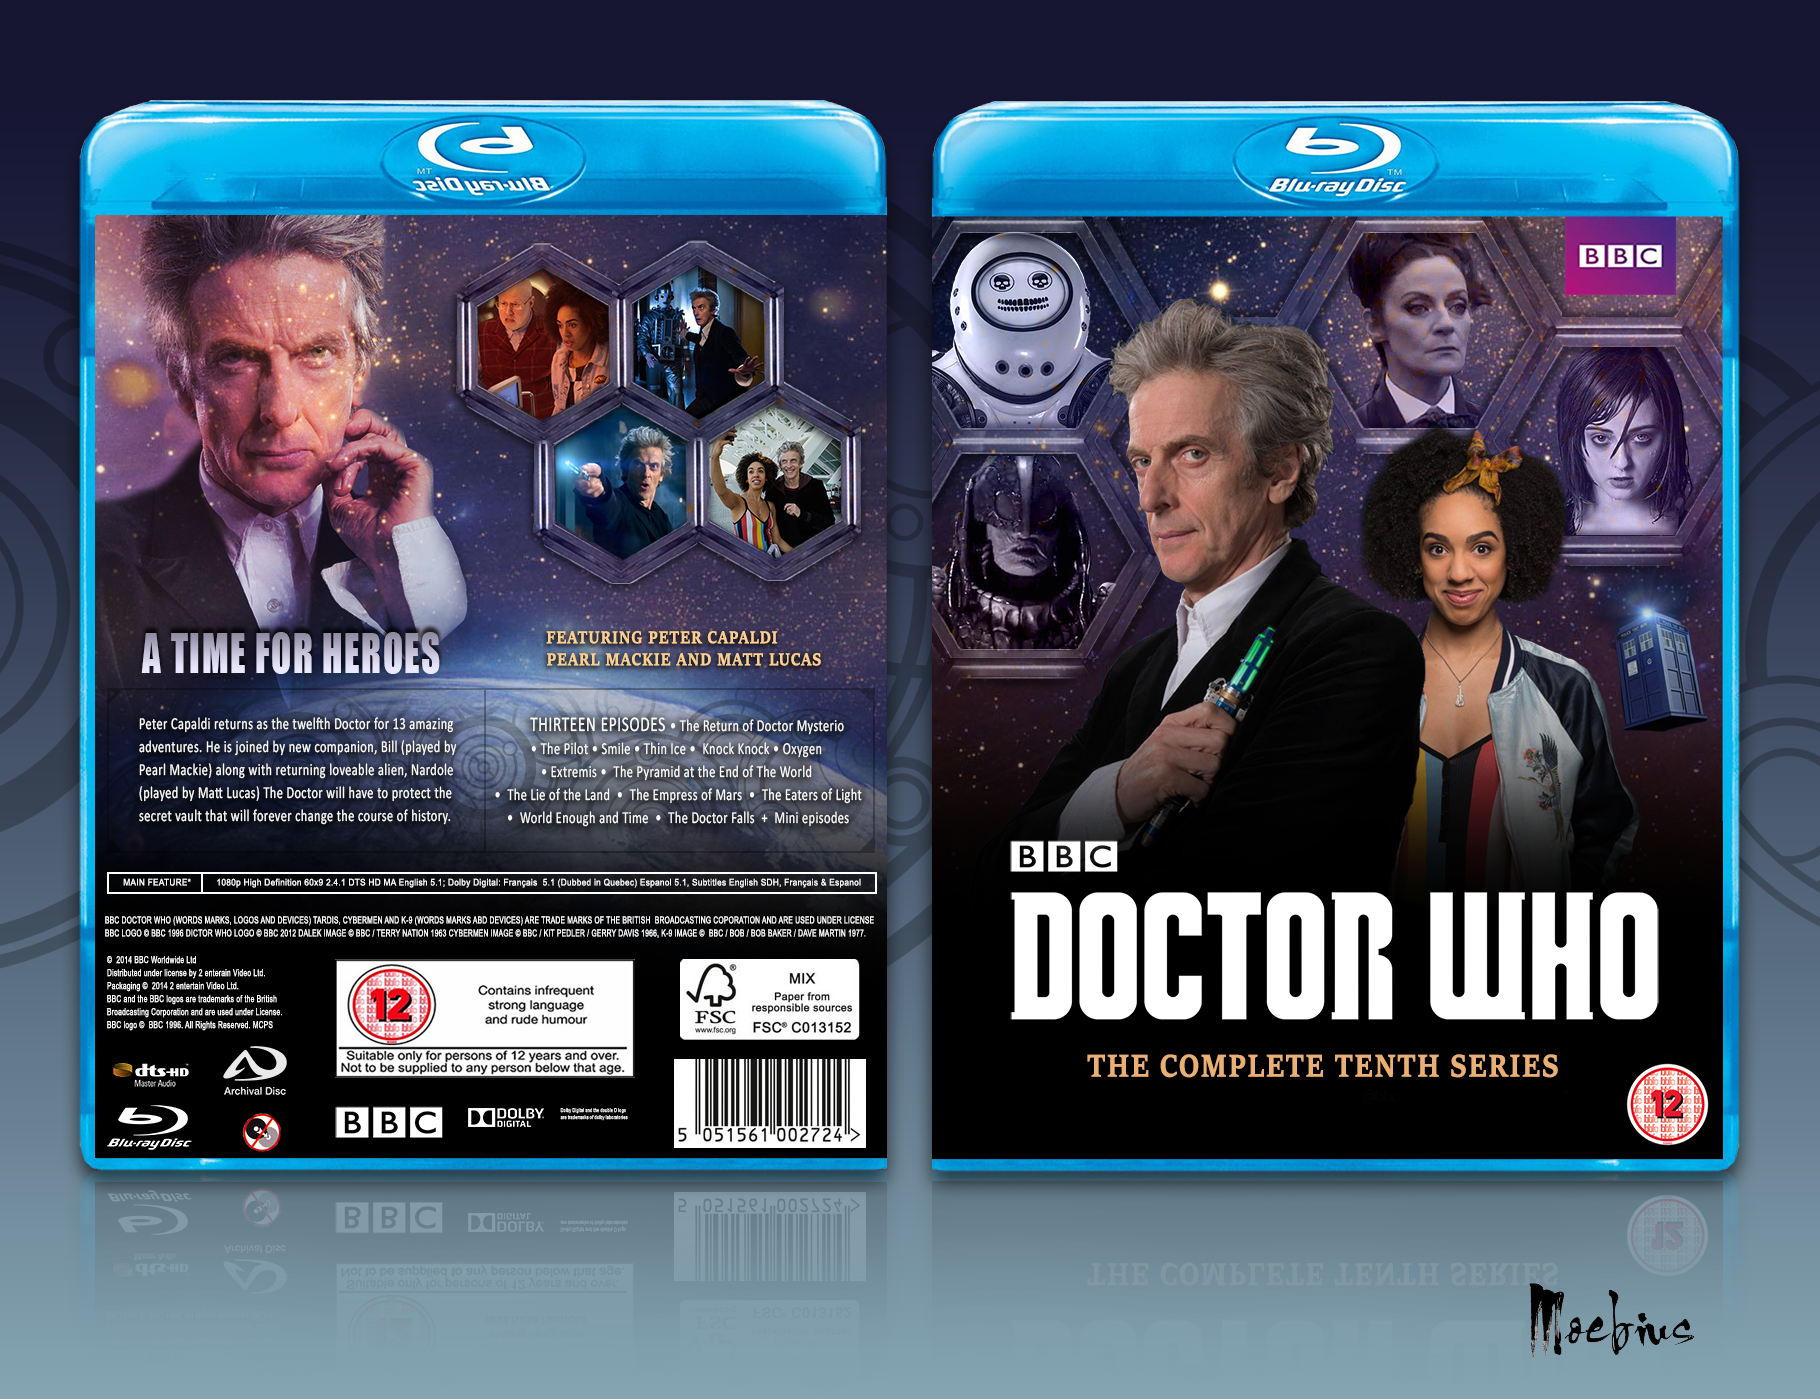 Doctor Who Series 10 box cover